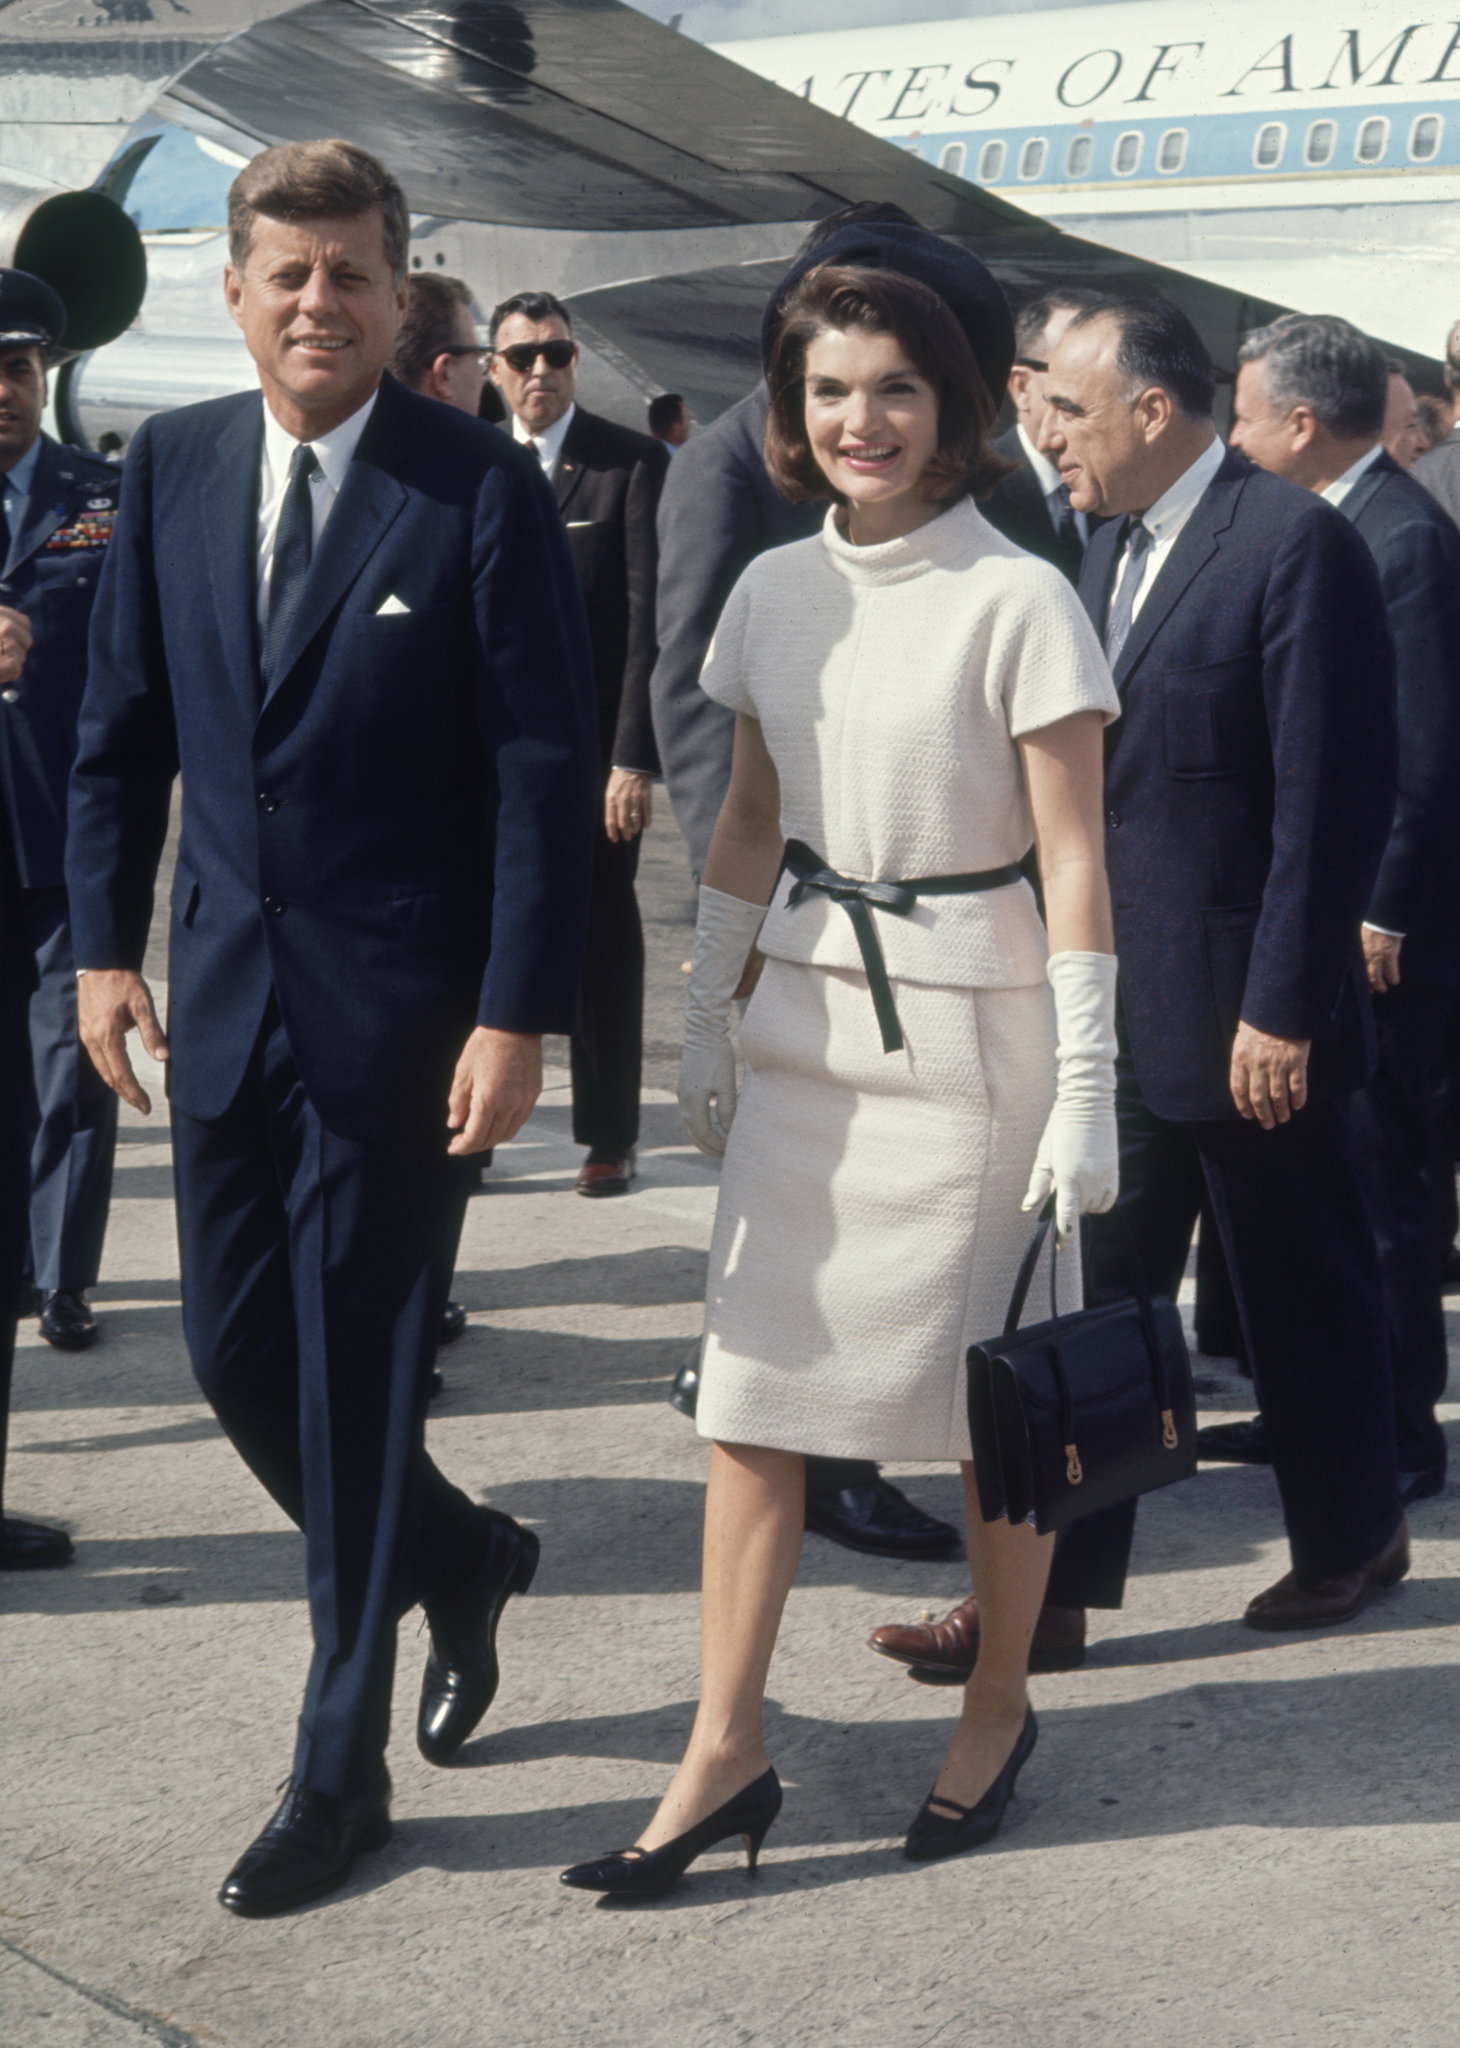 Mrs. Kennedy arriving in San Antonio wearing the white Chanel coat and skirt. Image:Art Rickerby/Time & Life Pictures, via Getty.